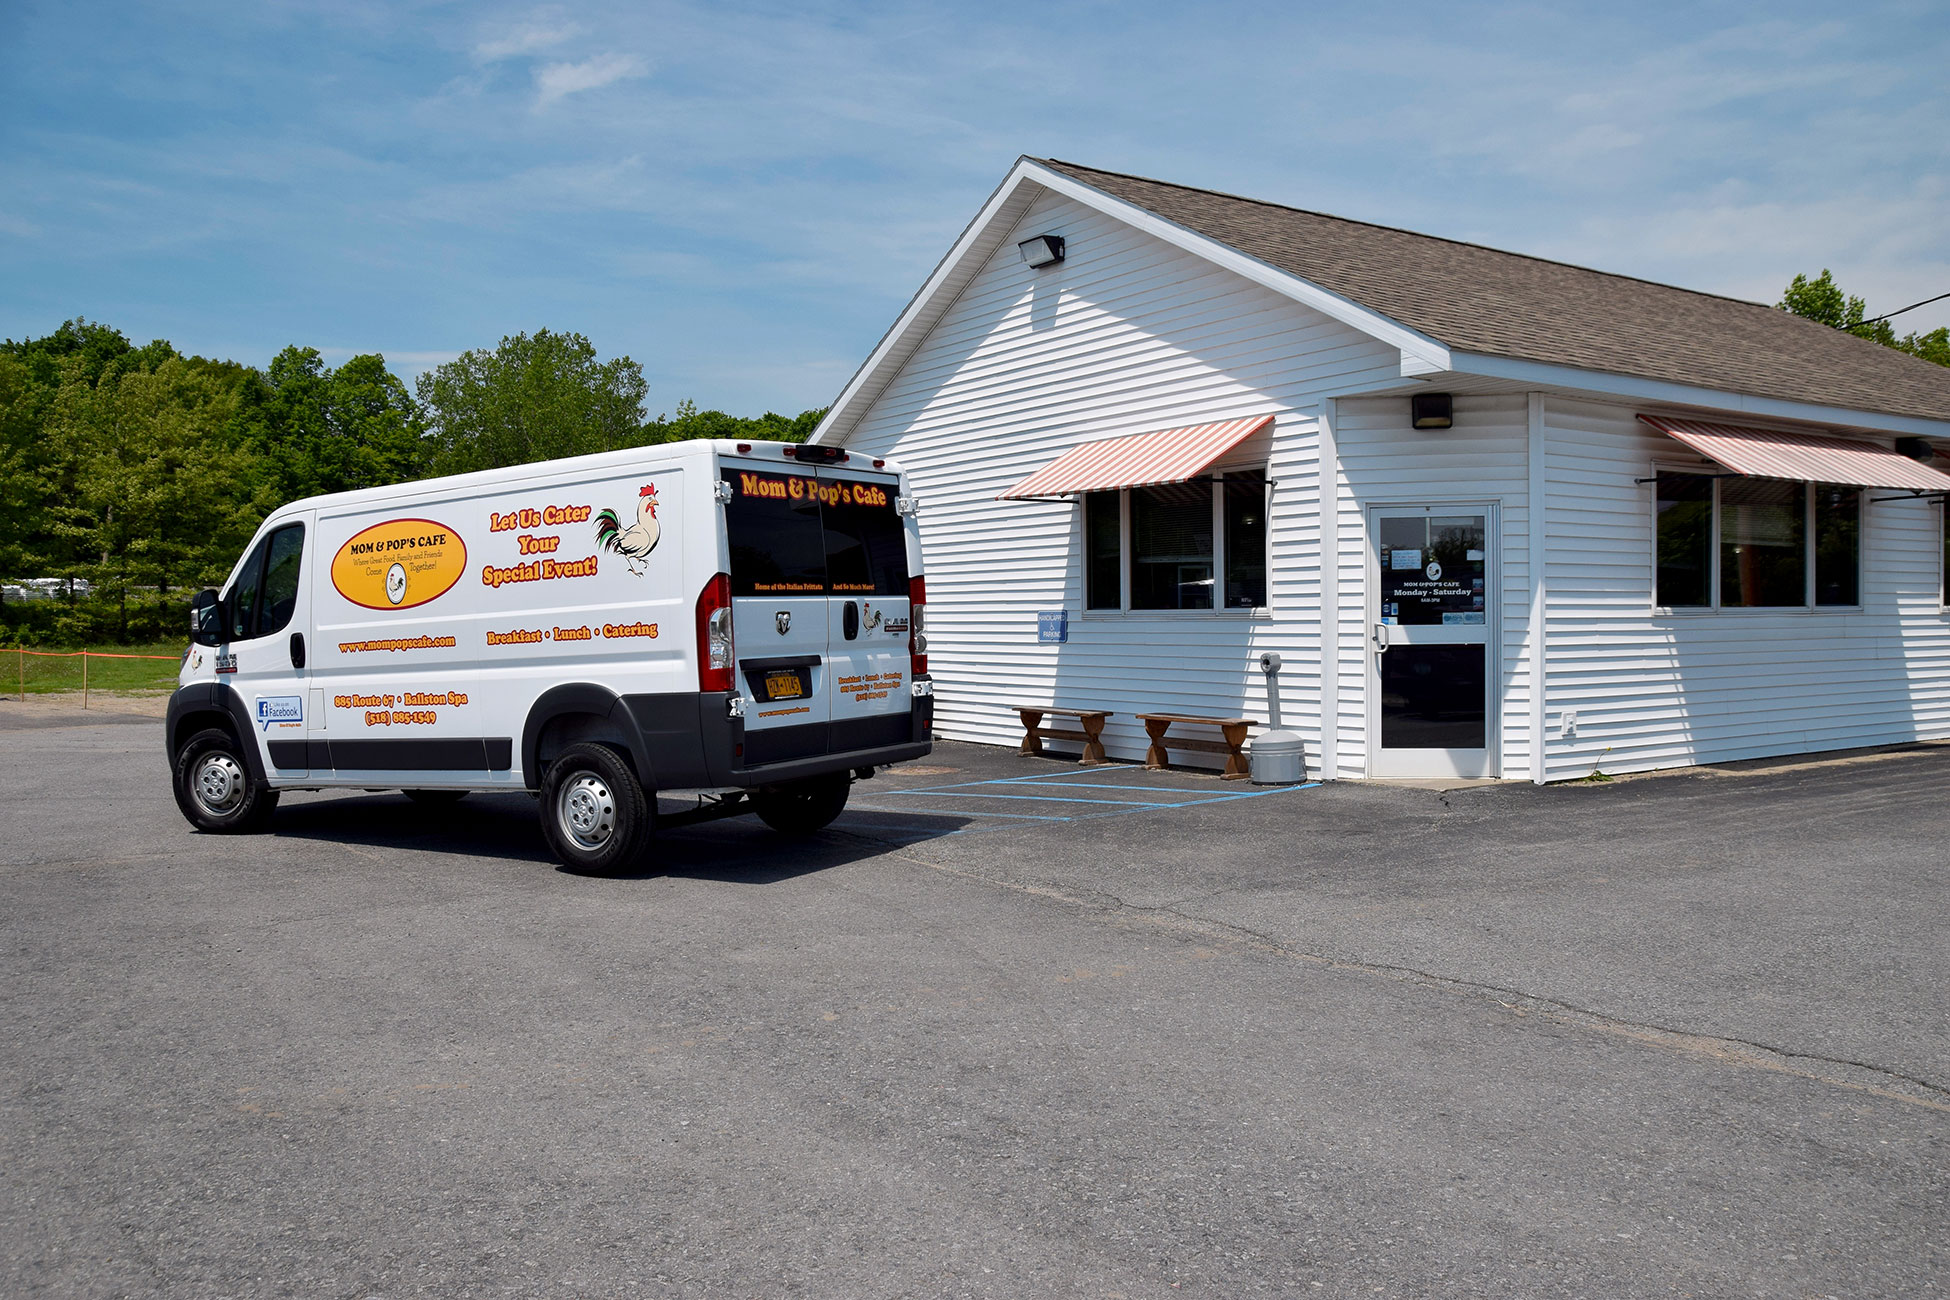 Photo of Mom and Pop's Cafe catering van with graphics designed and applied by SillyCar Design in front of the restaurant.